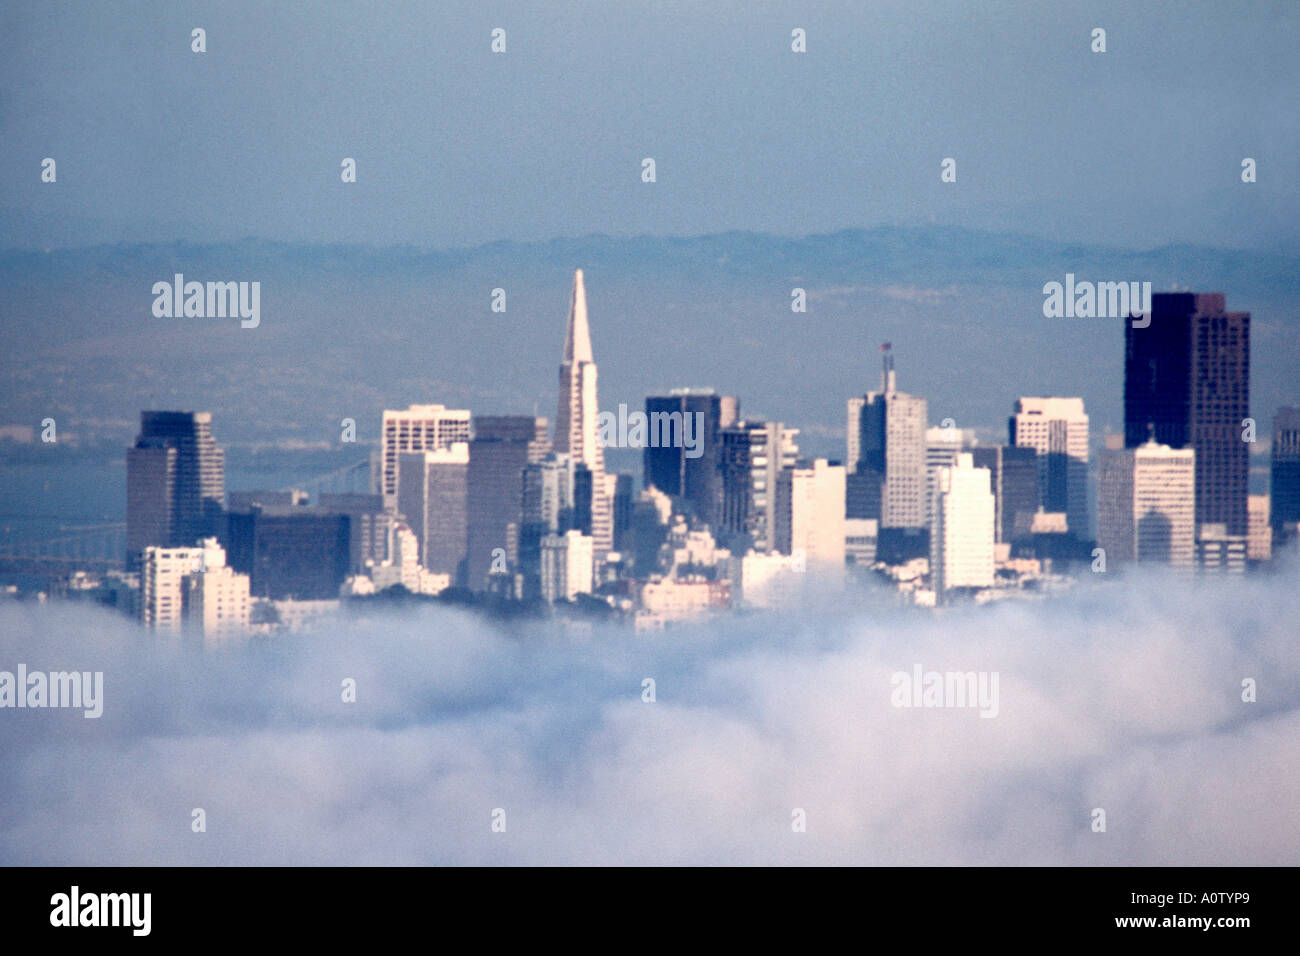 famous san francisco skyline and skyscrapers floating above the